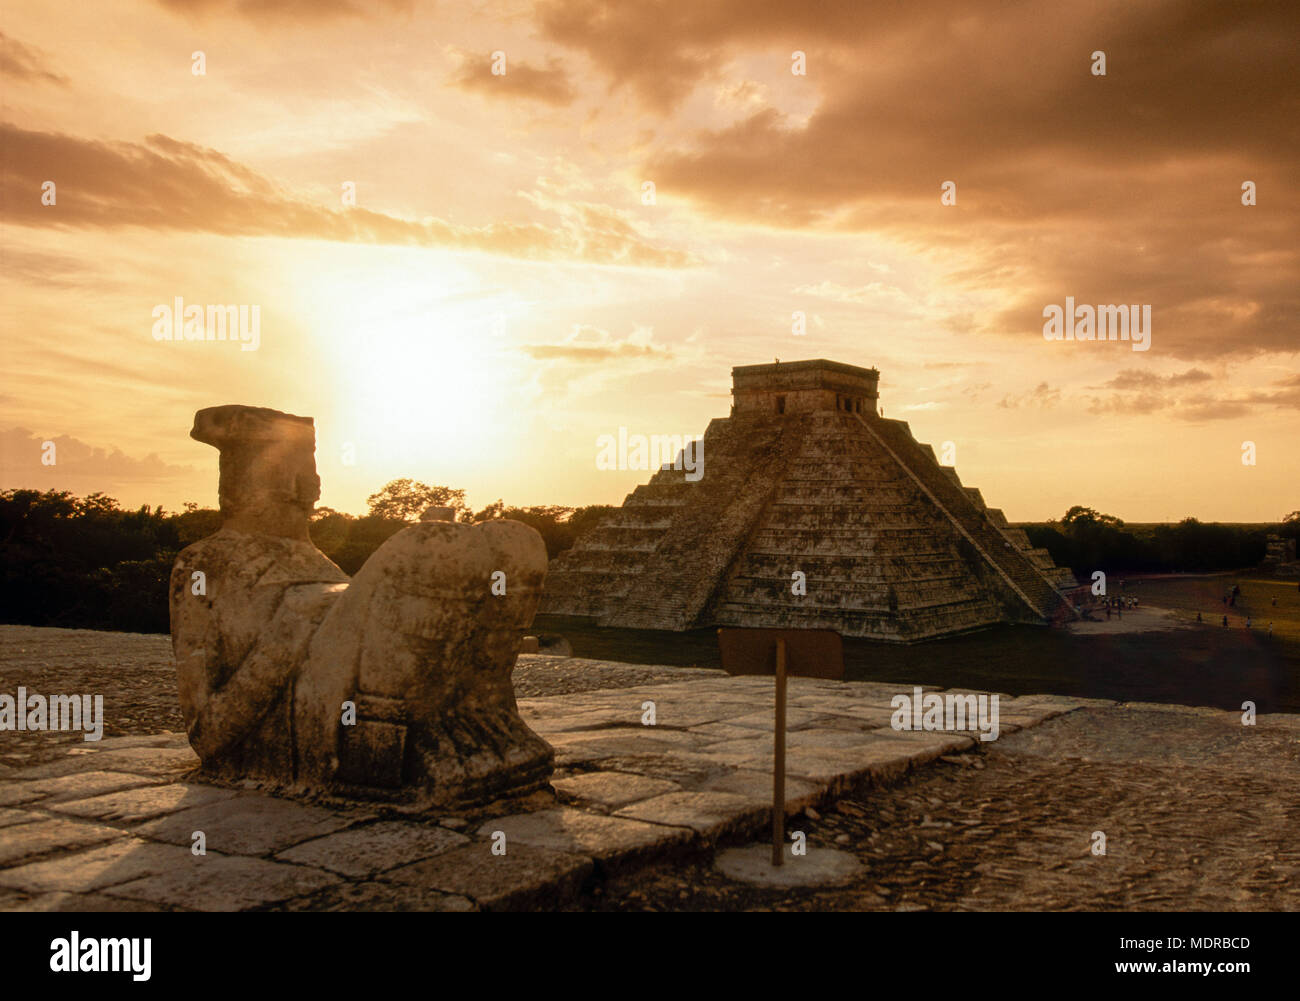 Chichen Itza, Yucatan, Mexico; el Castillo with statue of Chac Mool in foreground at sunset - Stock Image